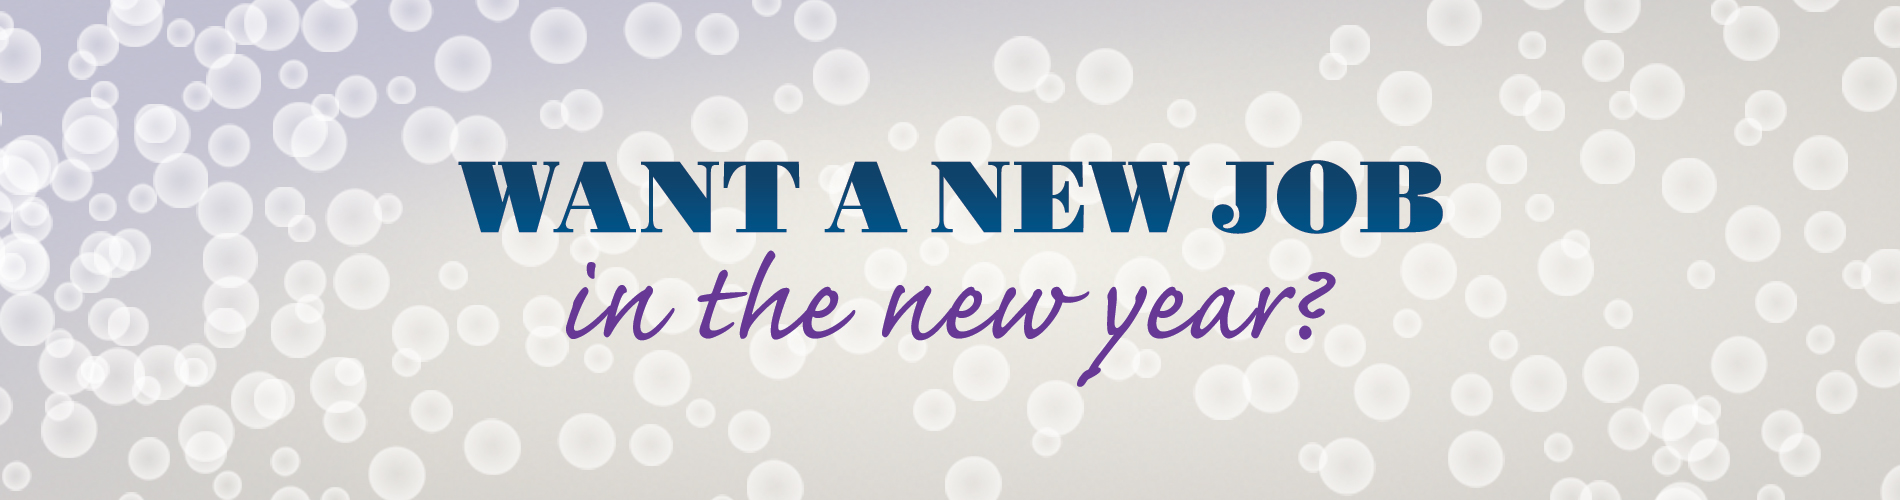 New Year - New Job Home Page Banner - Version 4